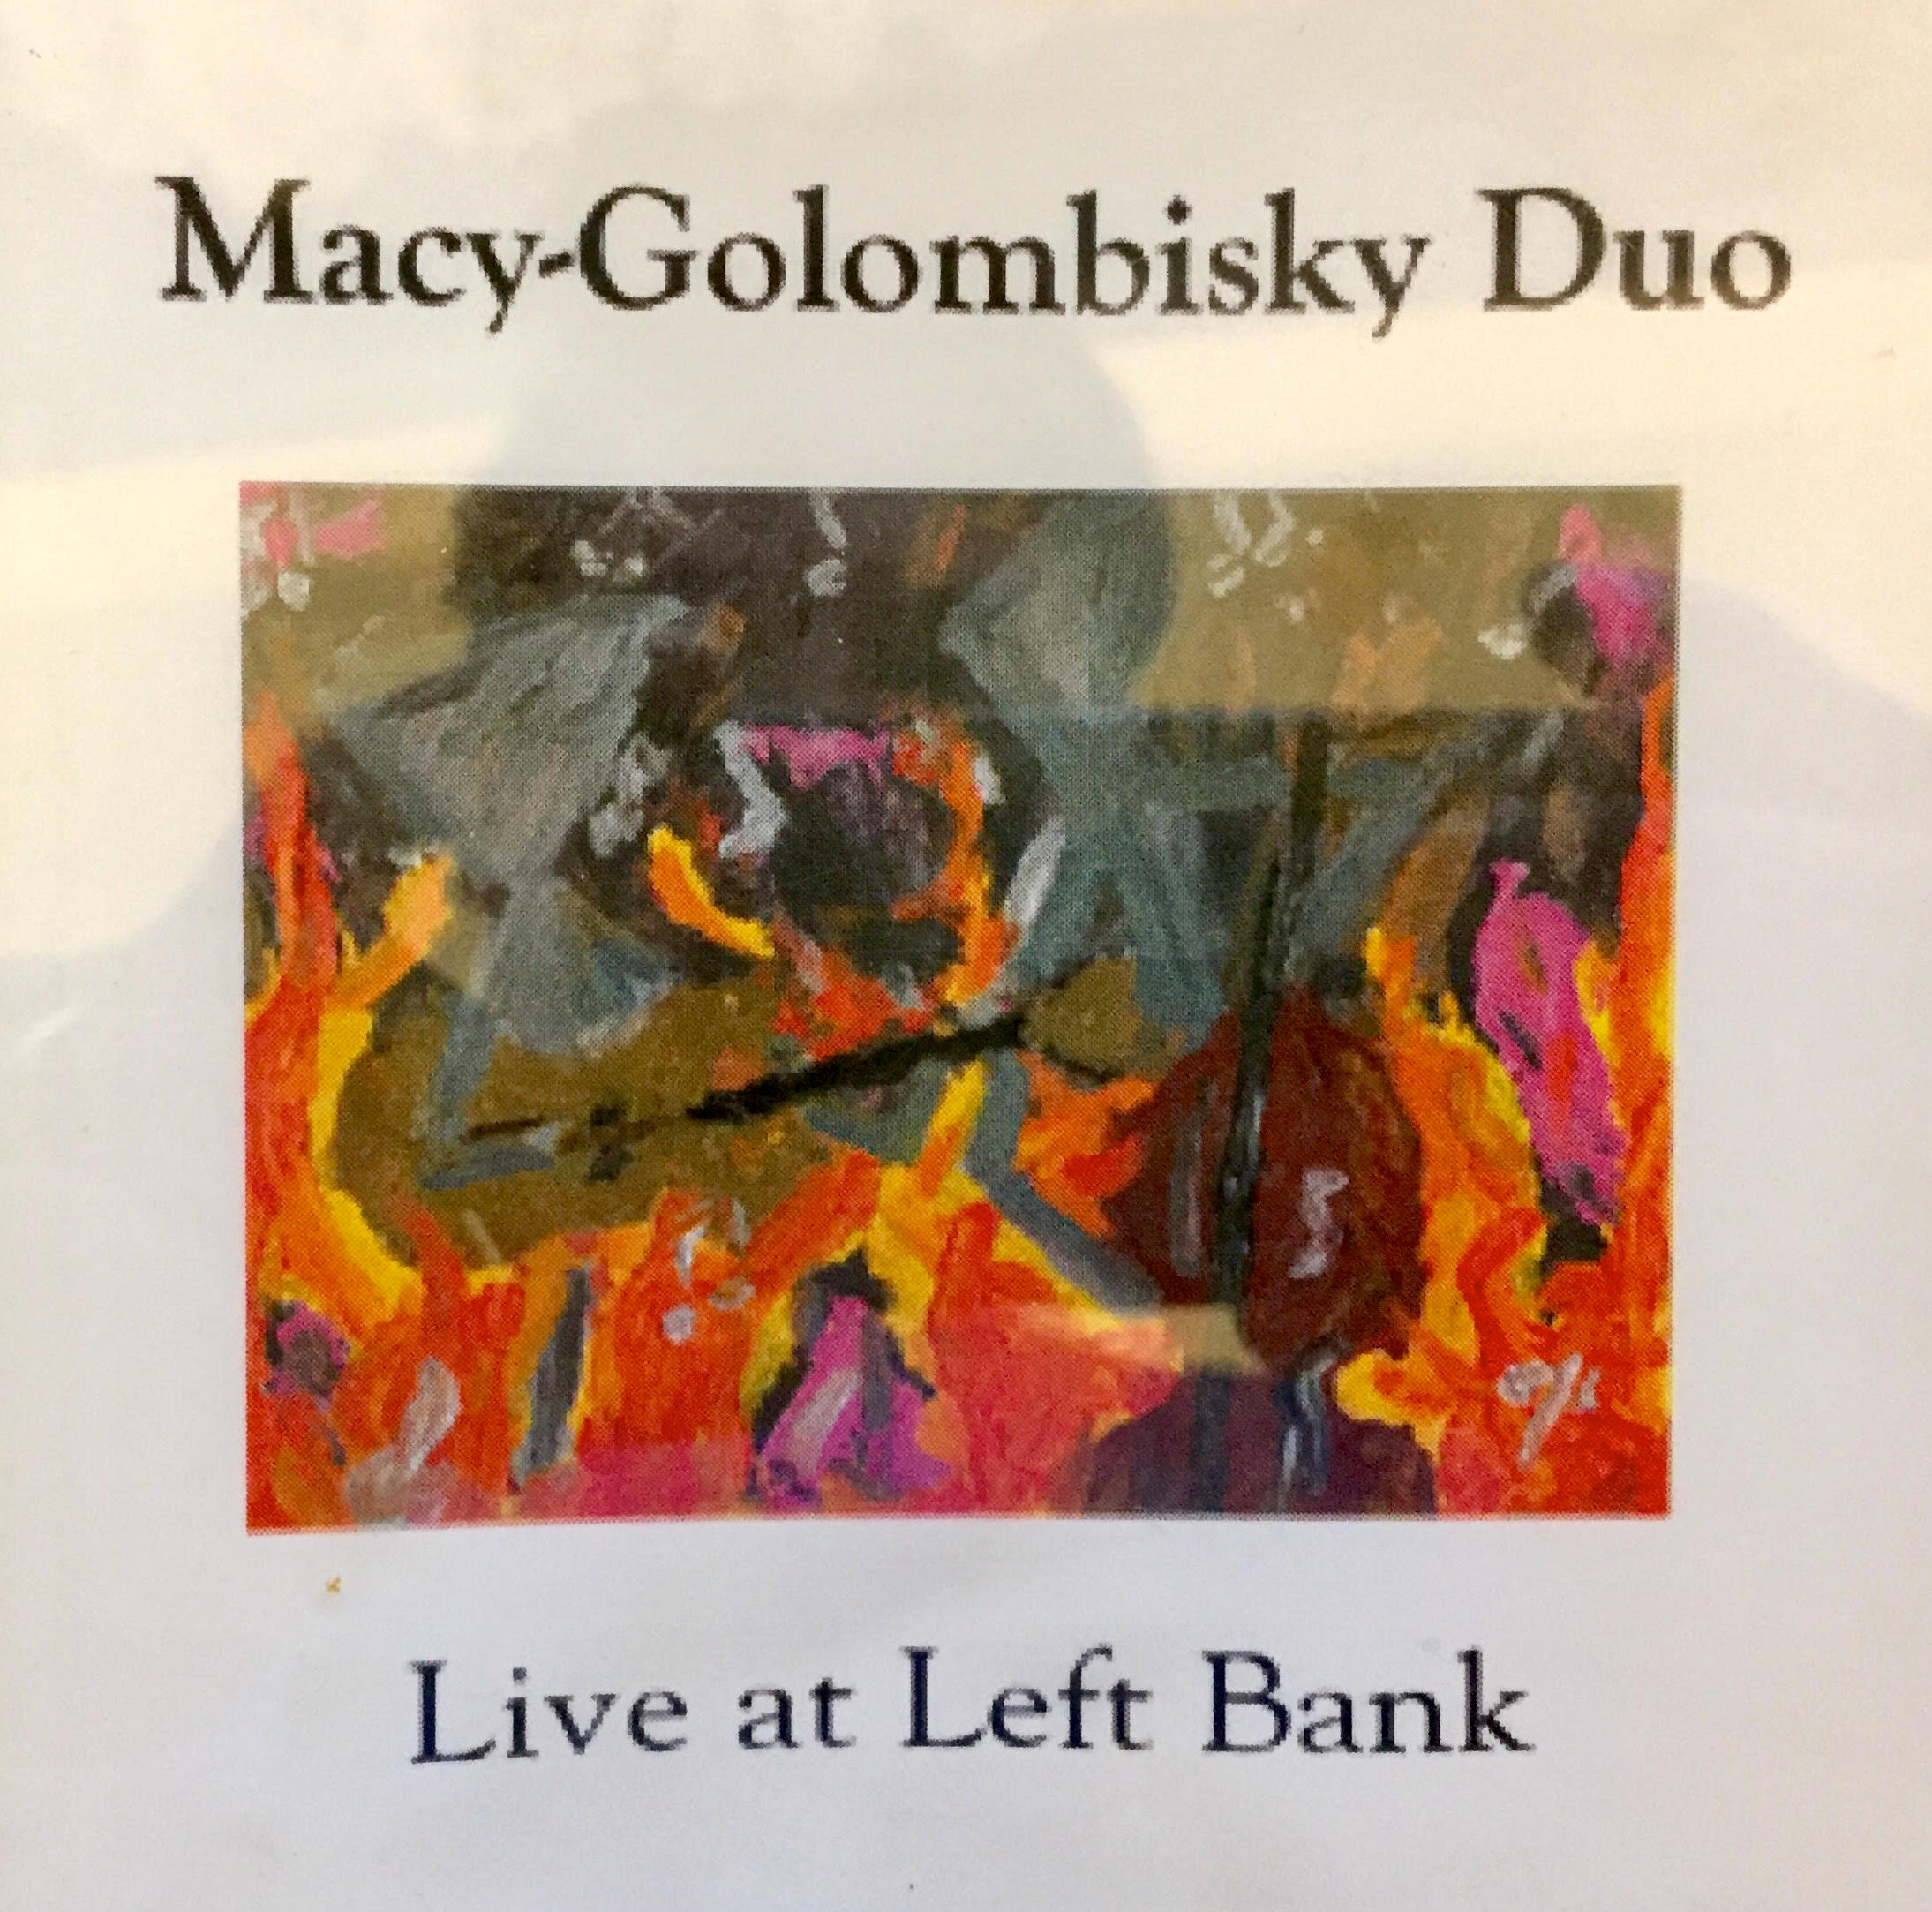 Macy-Golombisky Duo | Live at Left Bank